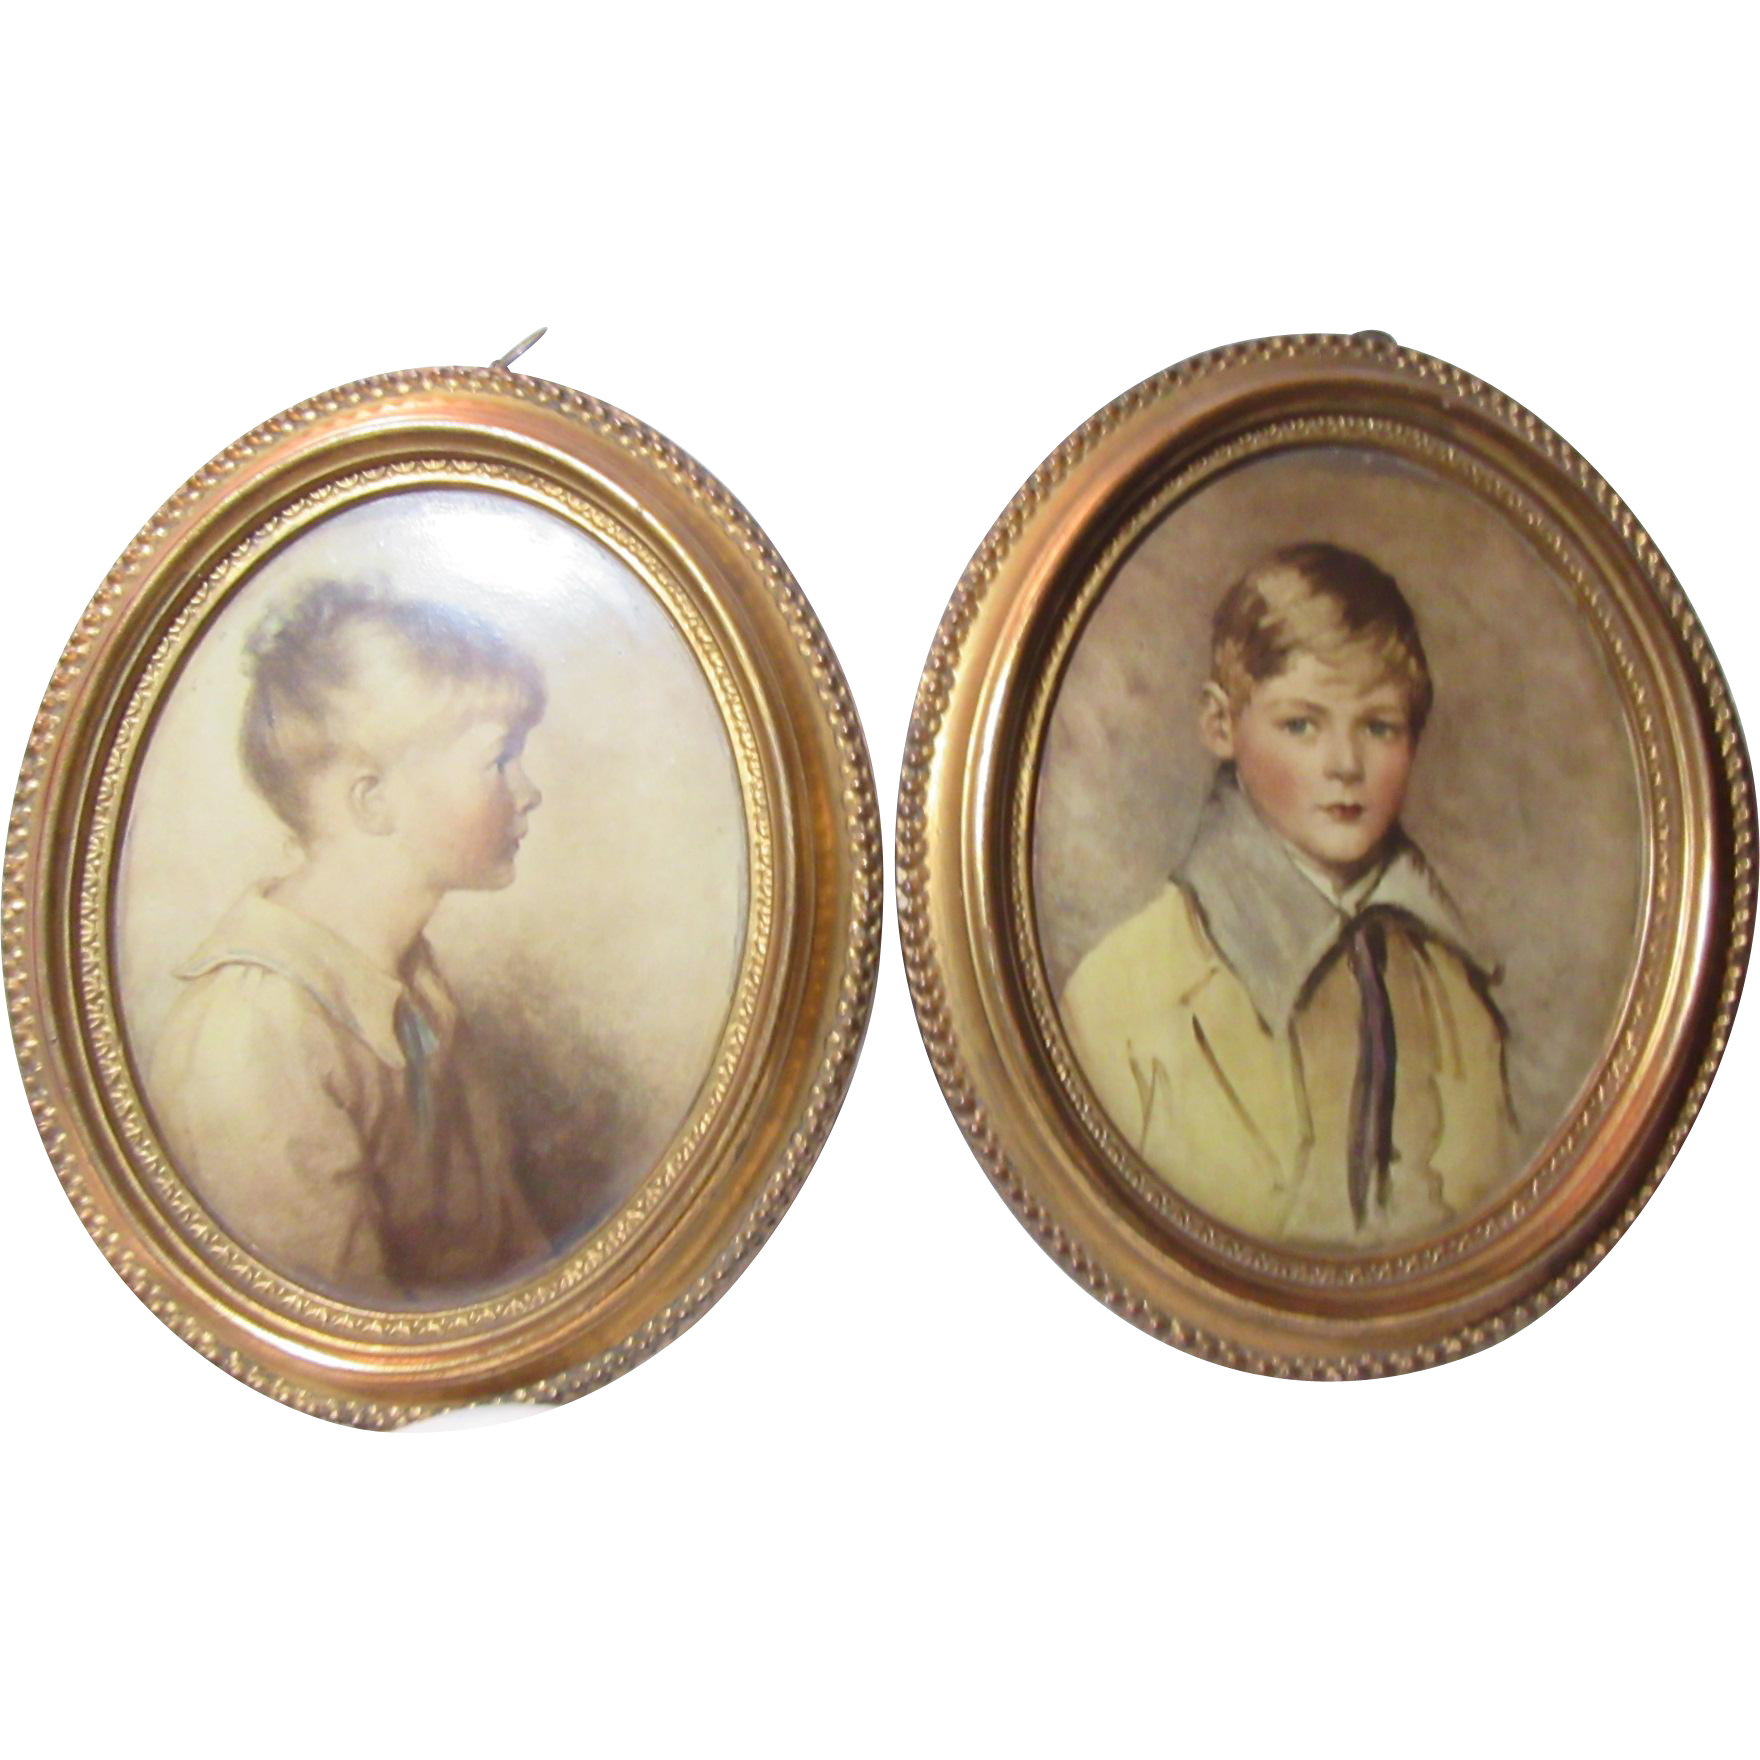 Borghese Pair Plaques Boy And Girl Gold Frames